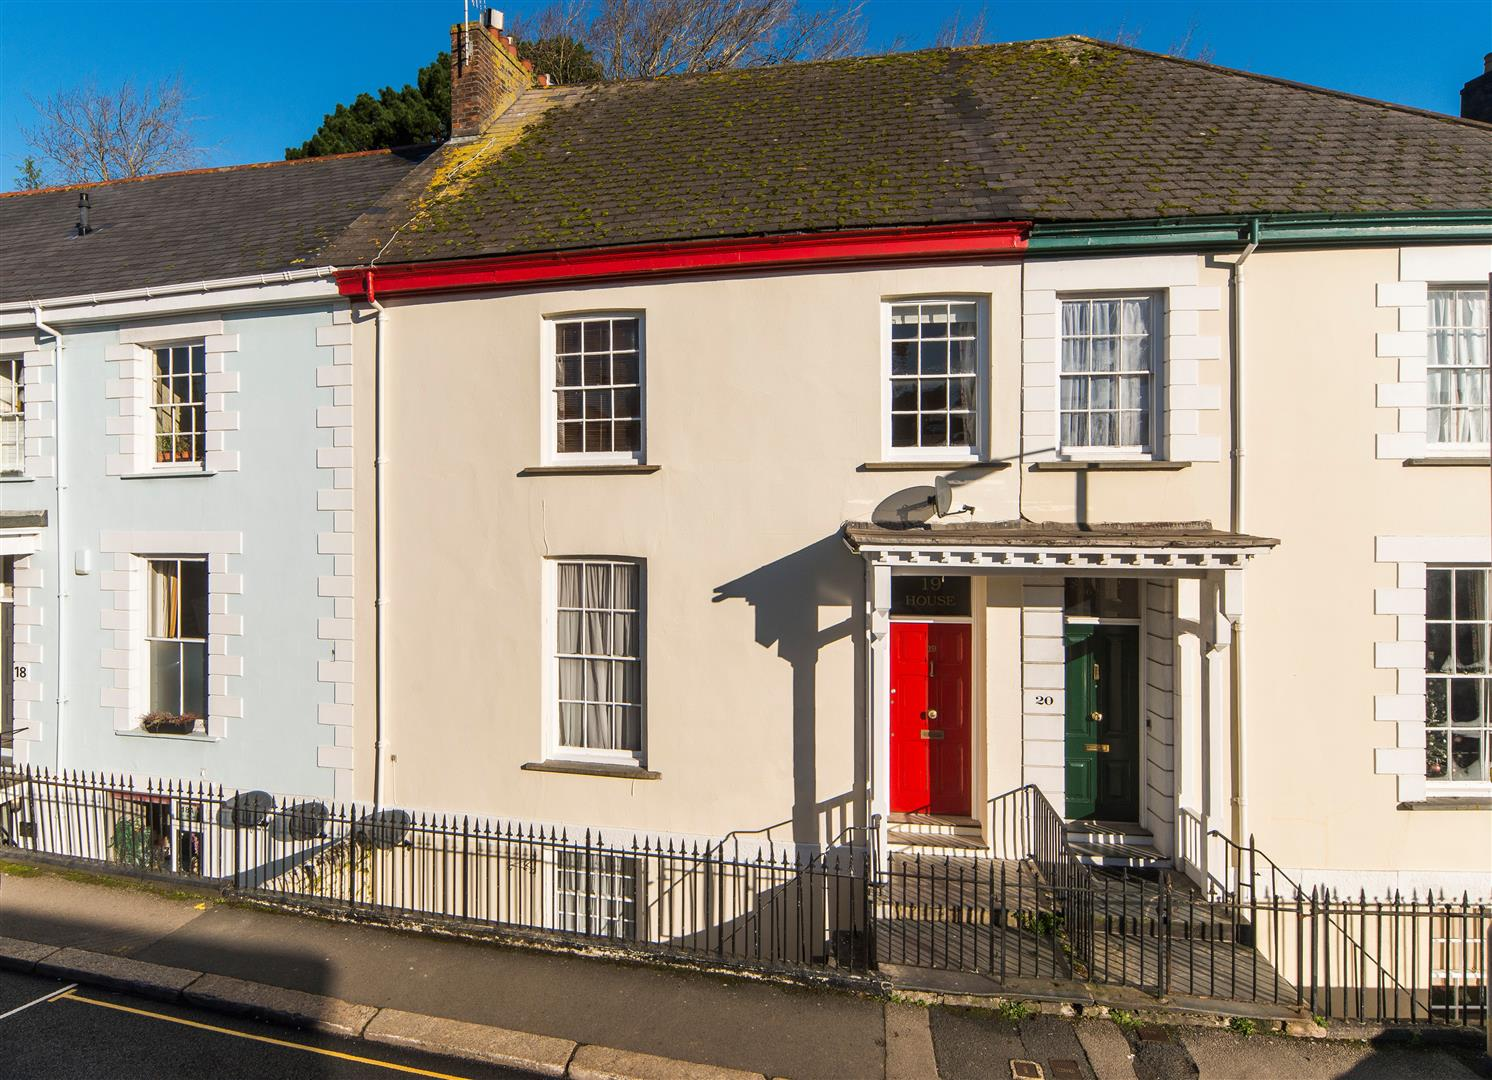 St. Georges Road, Truro Property Image